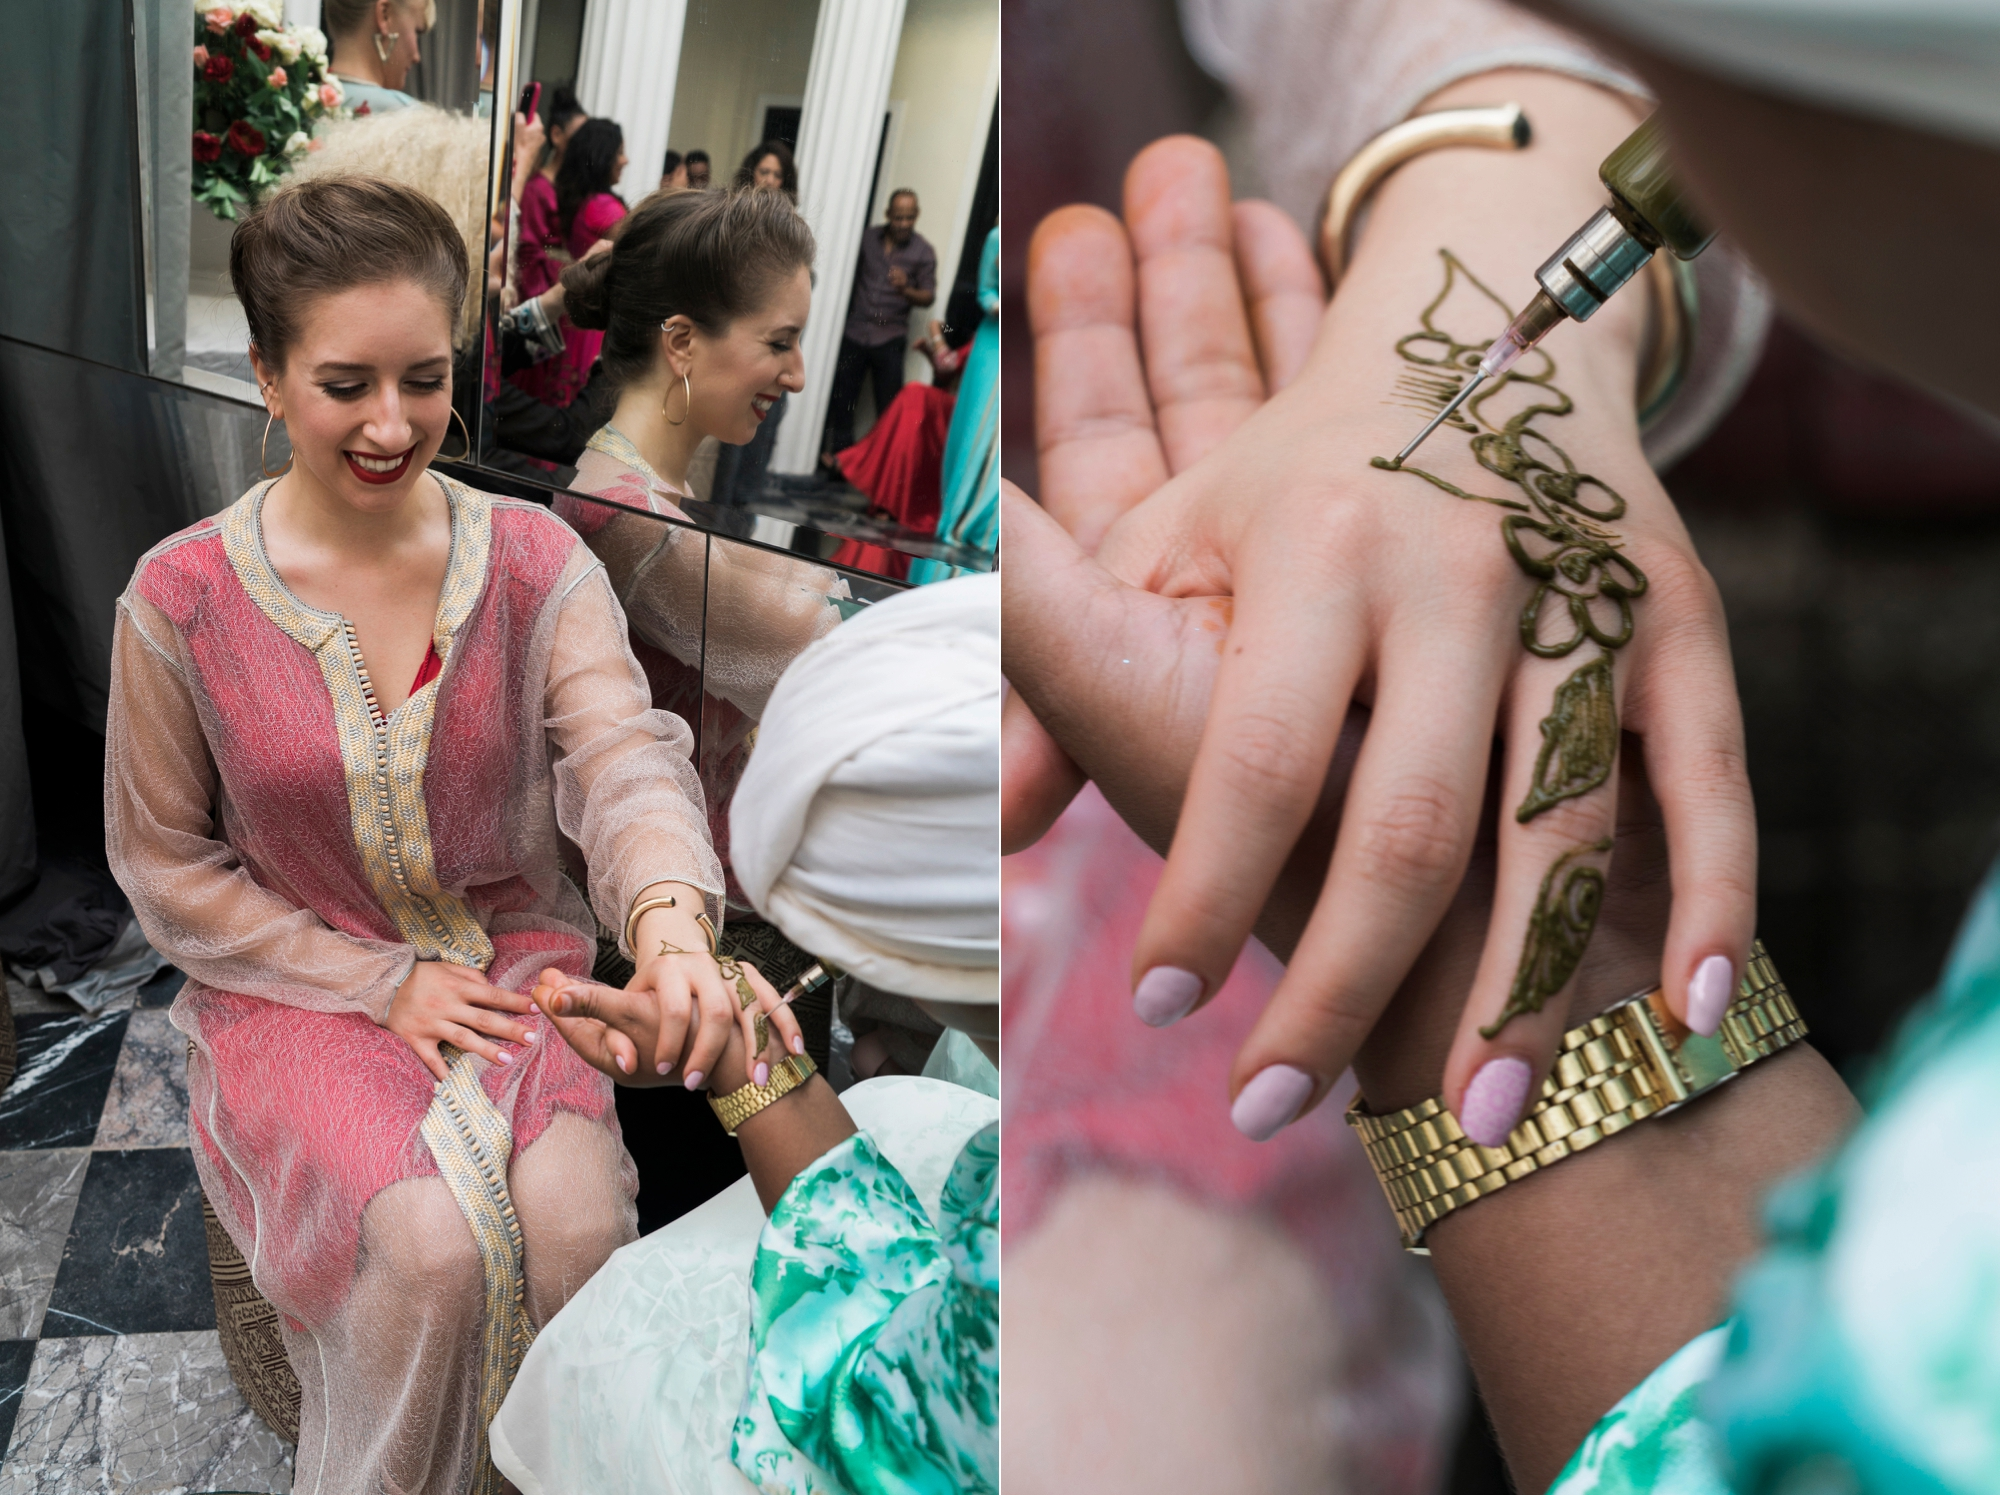 morocco-destination-wedding-henna-ceremony-lilouette-14.jpg